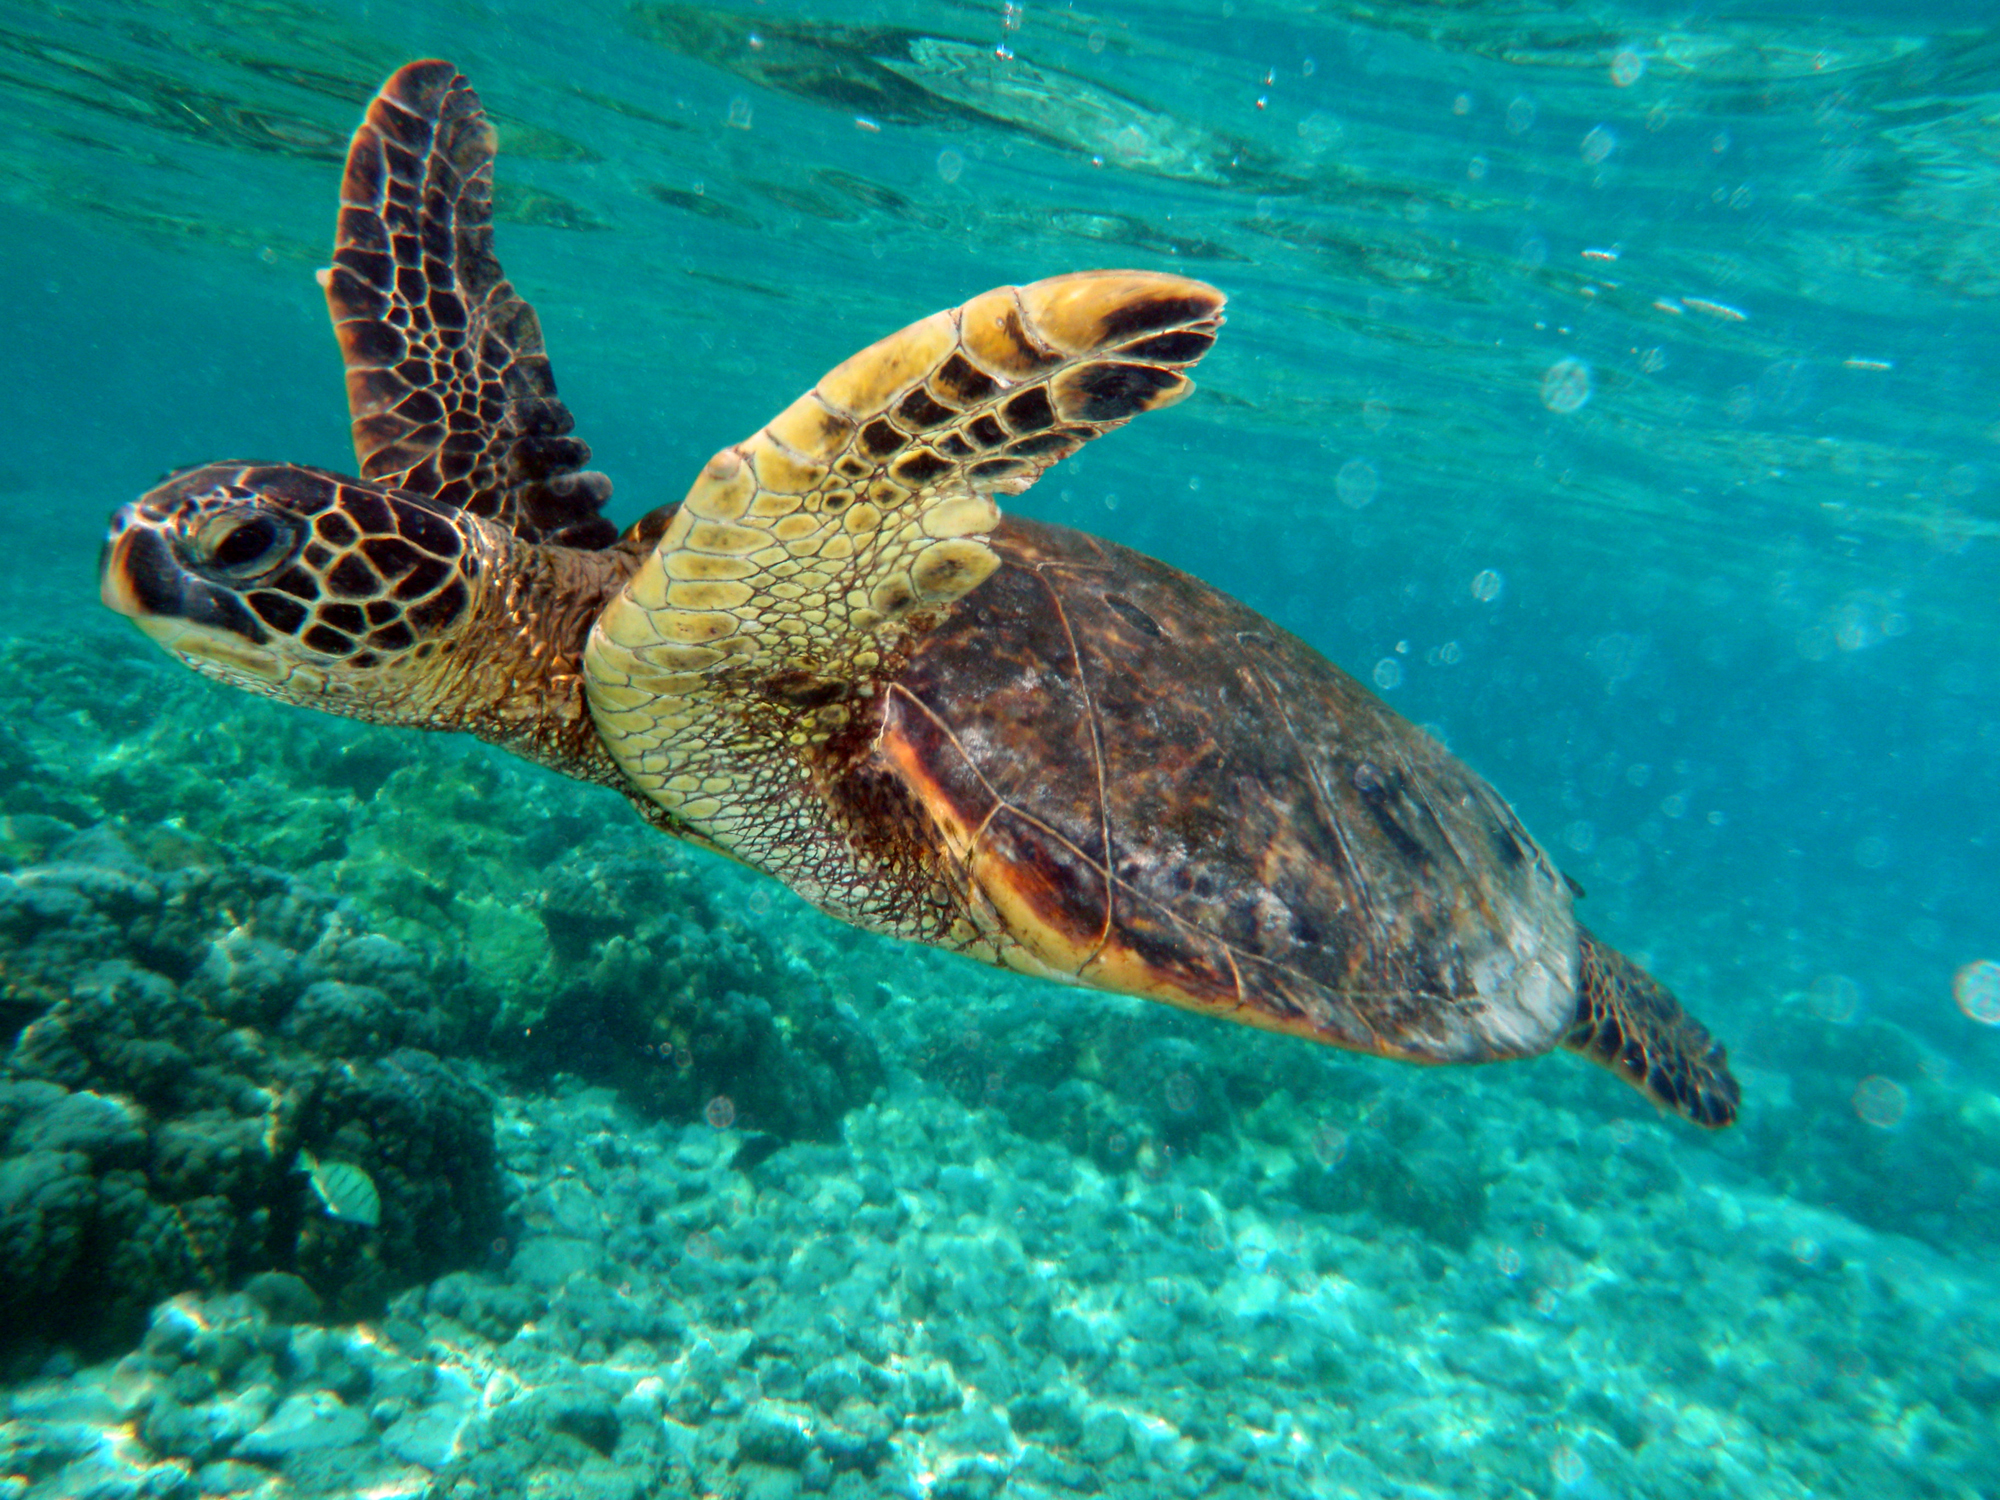 File:Green turtle swimming in Kona May 2010.jpg - Wikimedia Commons